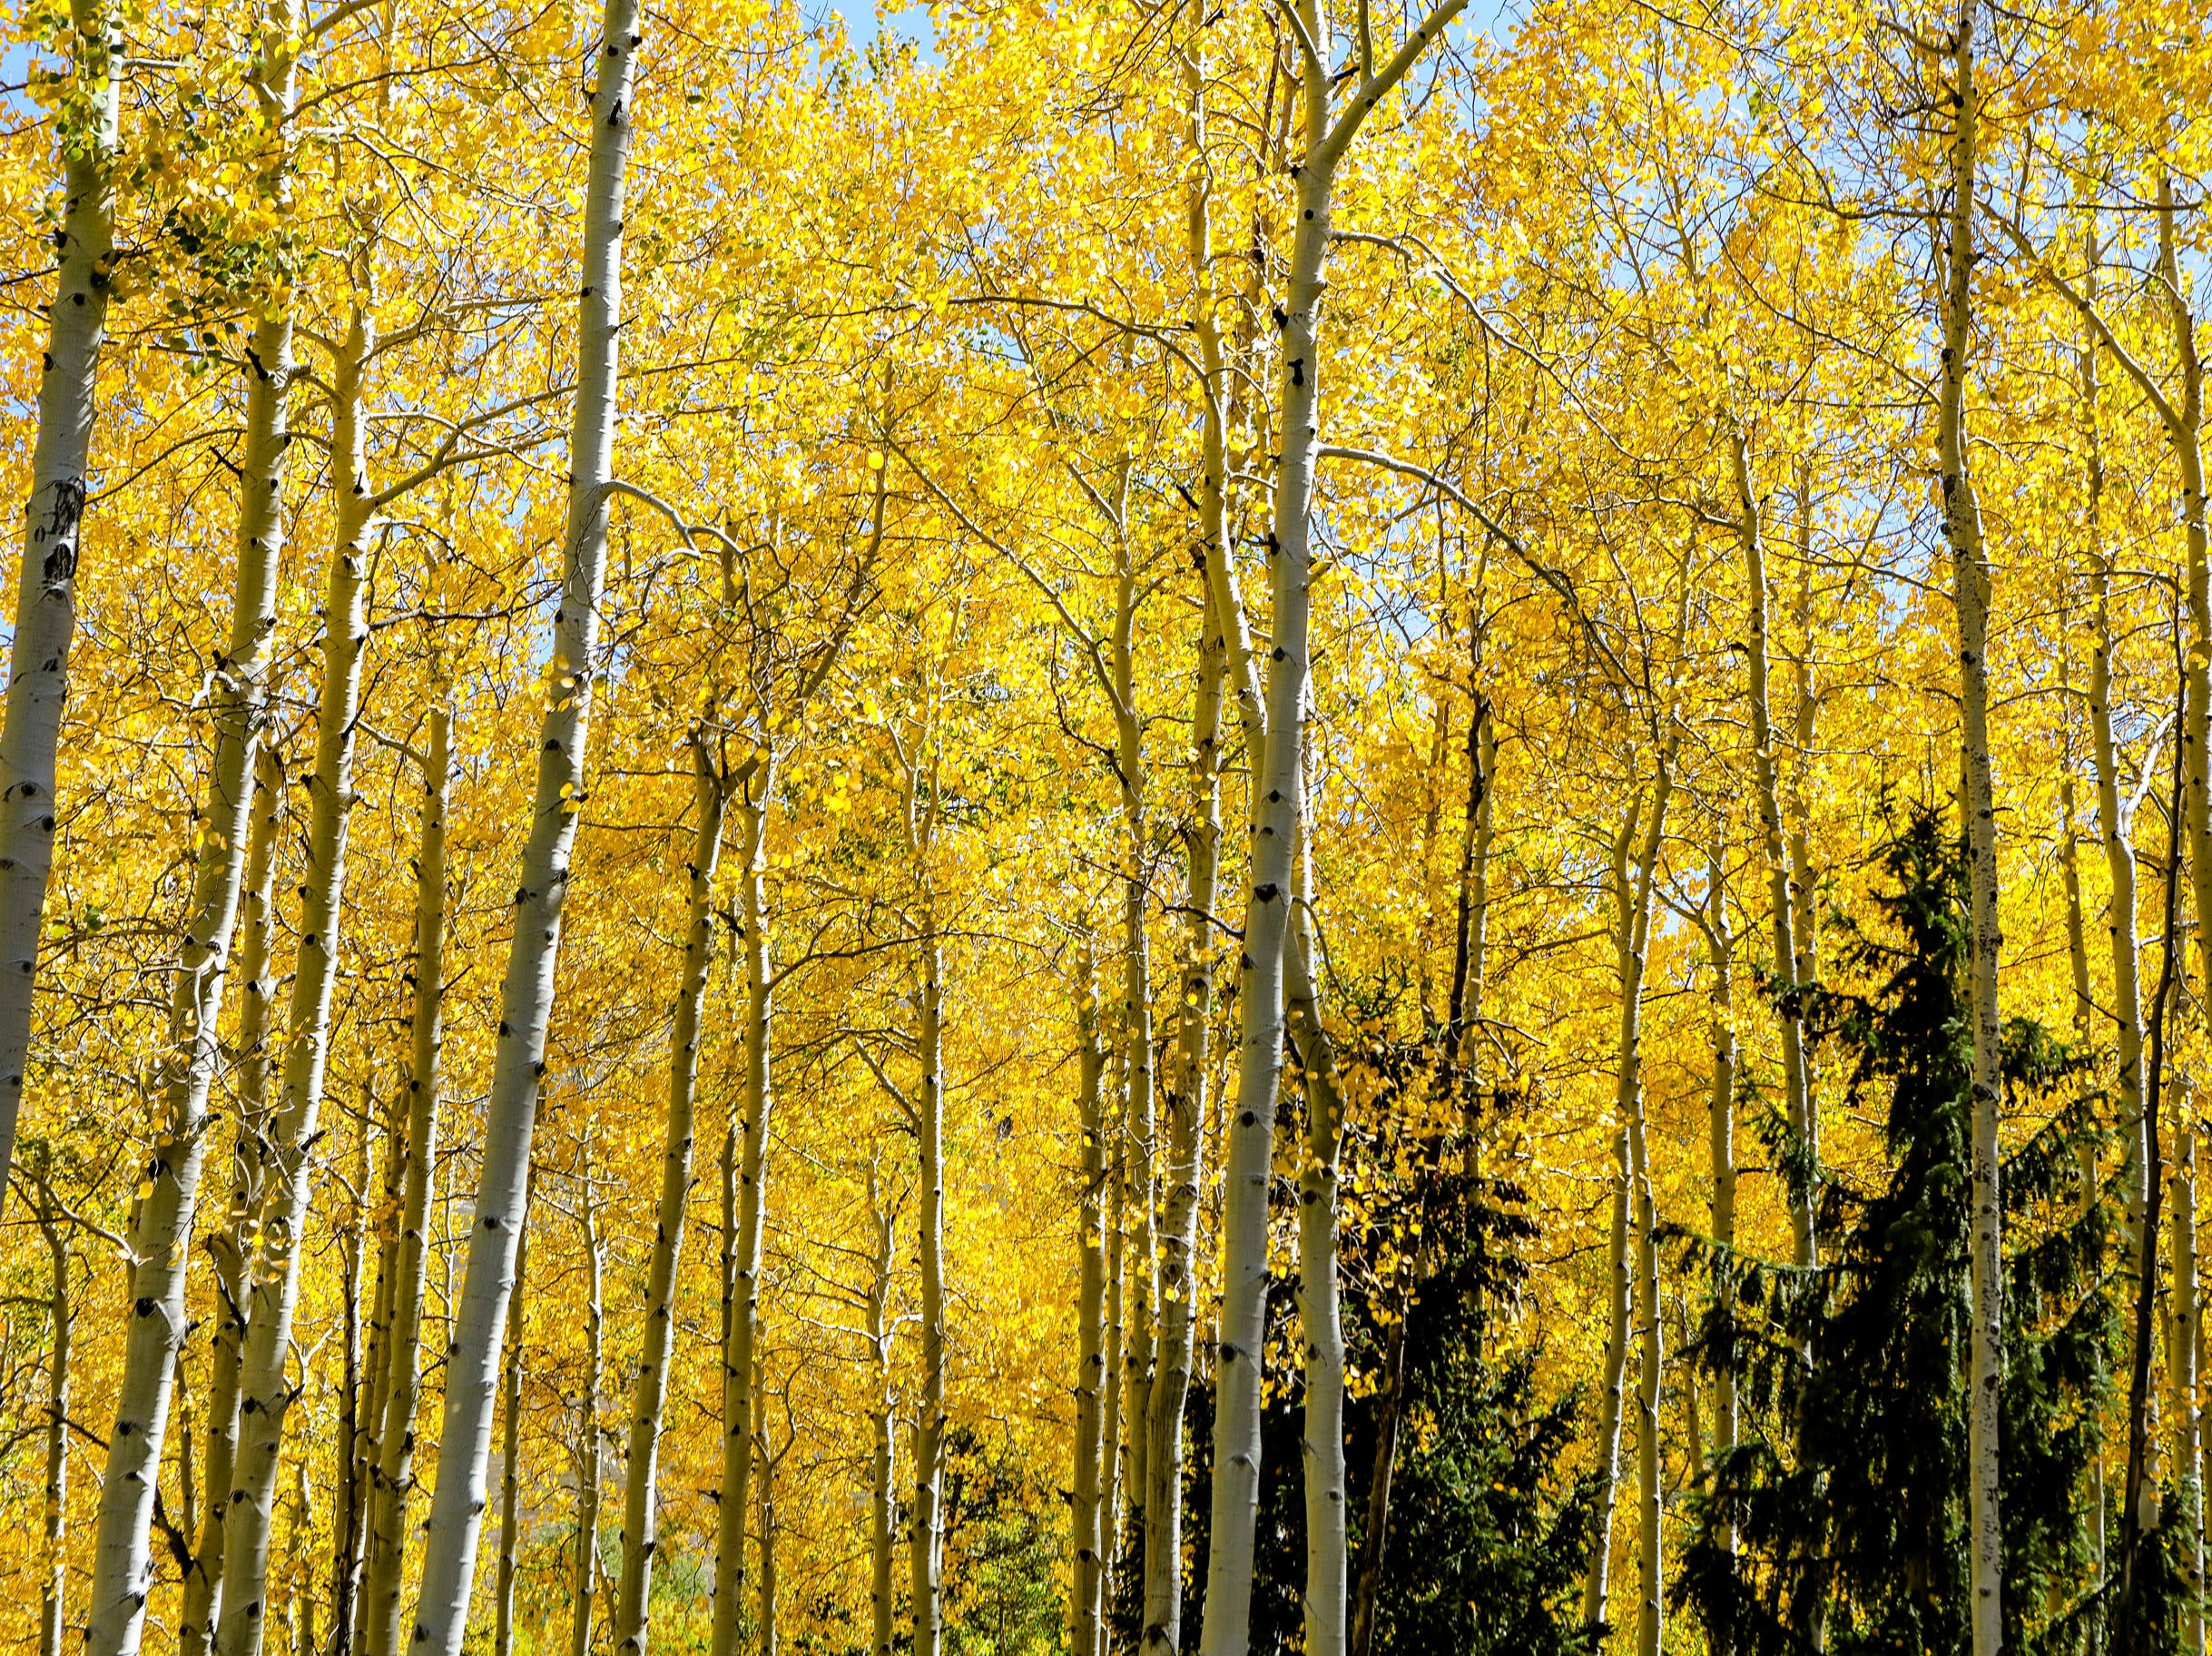 Fall colors were served up in full during The Fall Wine & Food Classic Grand Tasting Saturday, Sept. 22, 2018, in Vail, Colo. The fall food and wine event featured hiking yoga and, as always, a grand tasting.